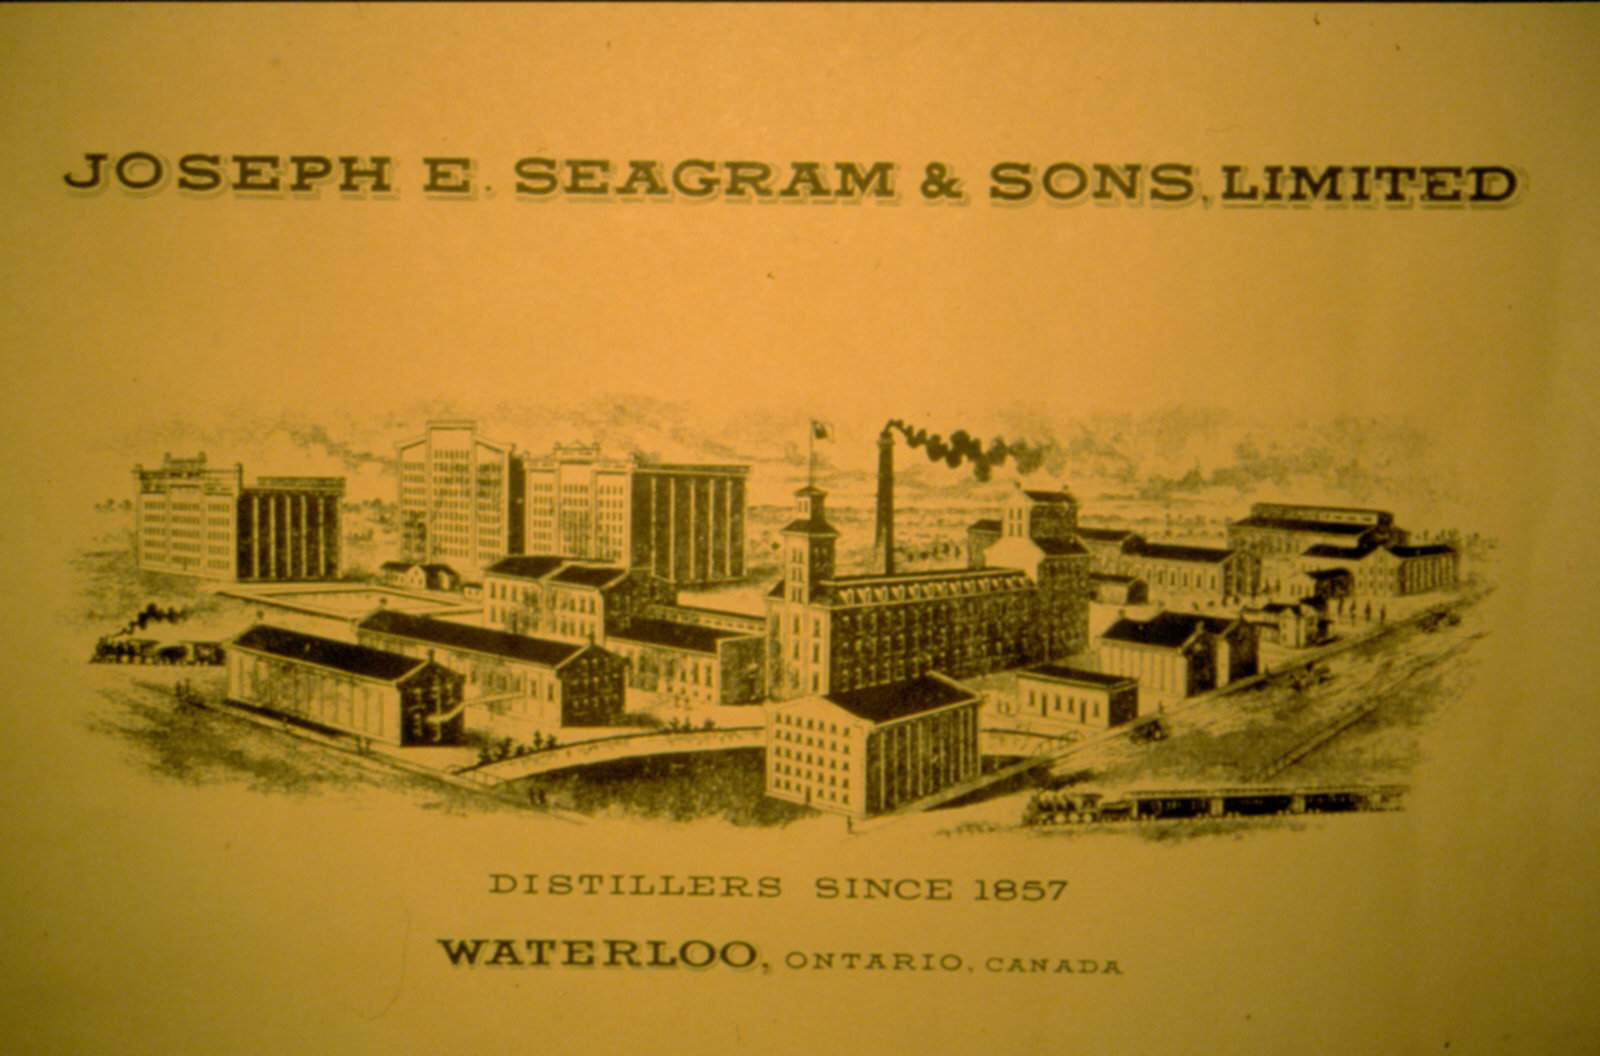 Joseph E. Seagram and Sons Limited Advertisement